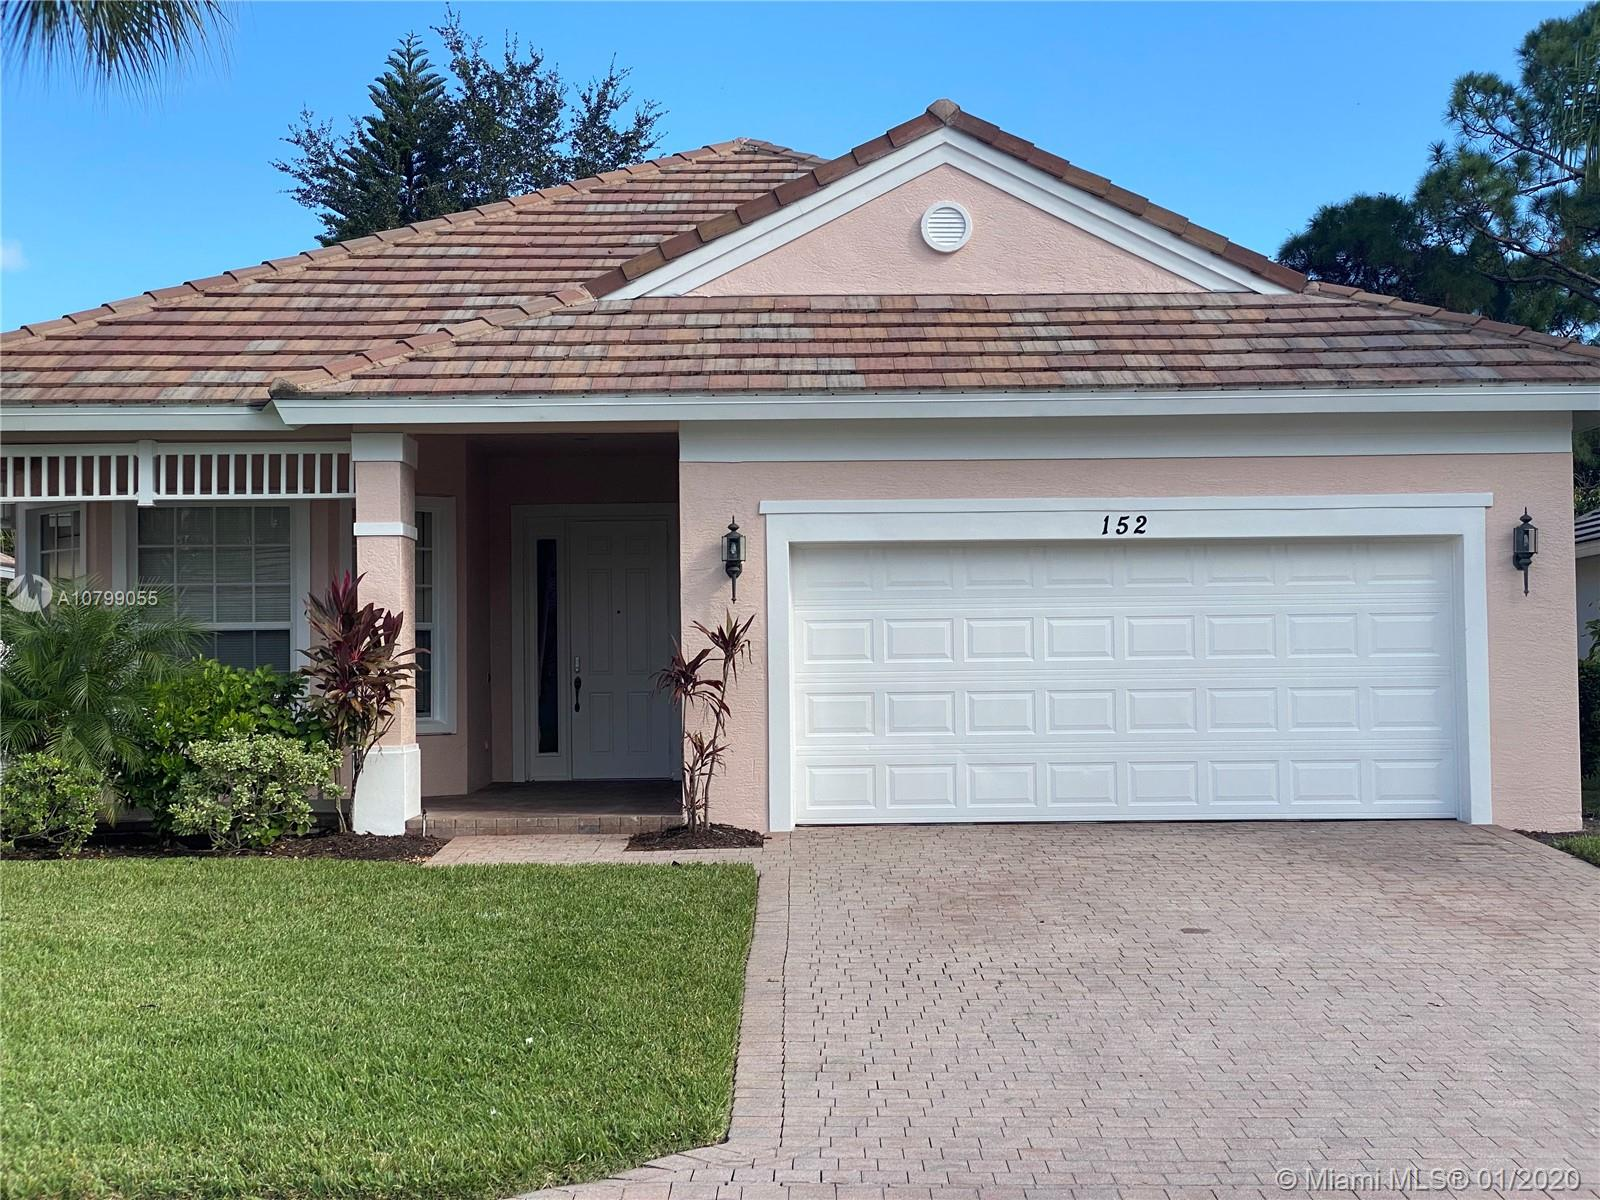 152 NW Pleasant Grove Way, Port St. Lucie, FL 34986